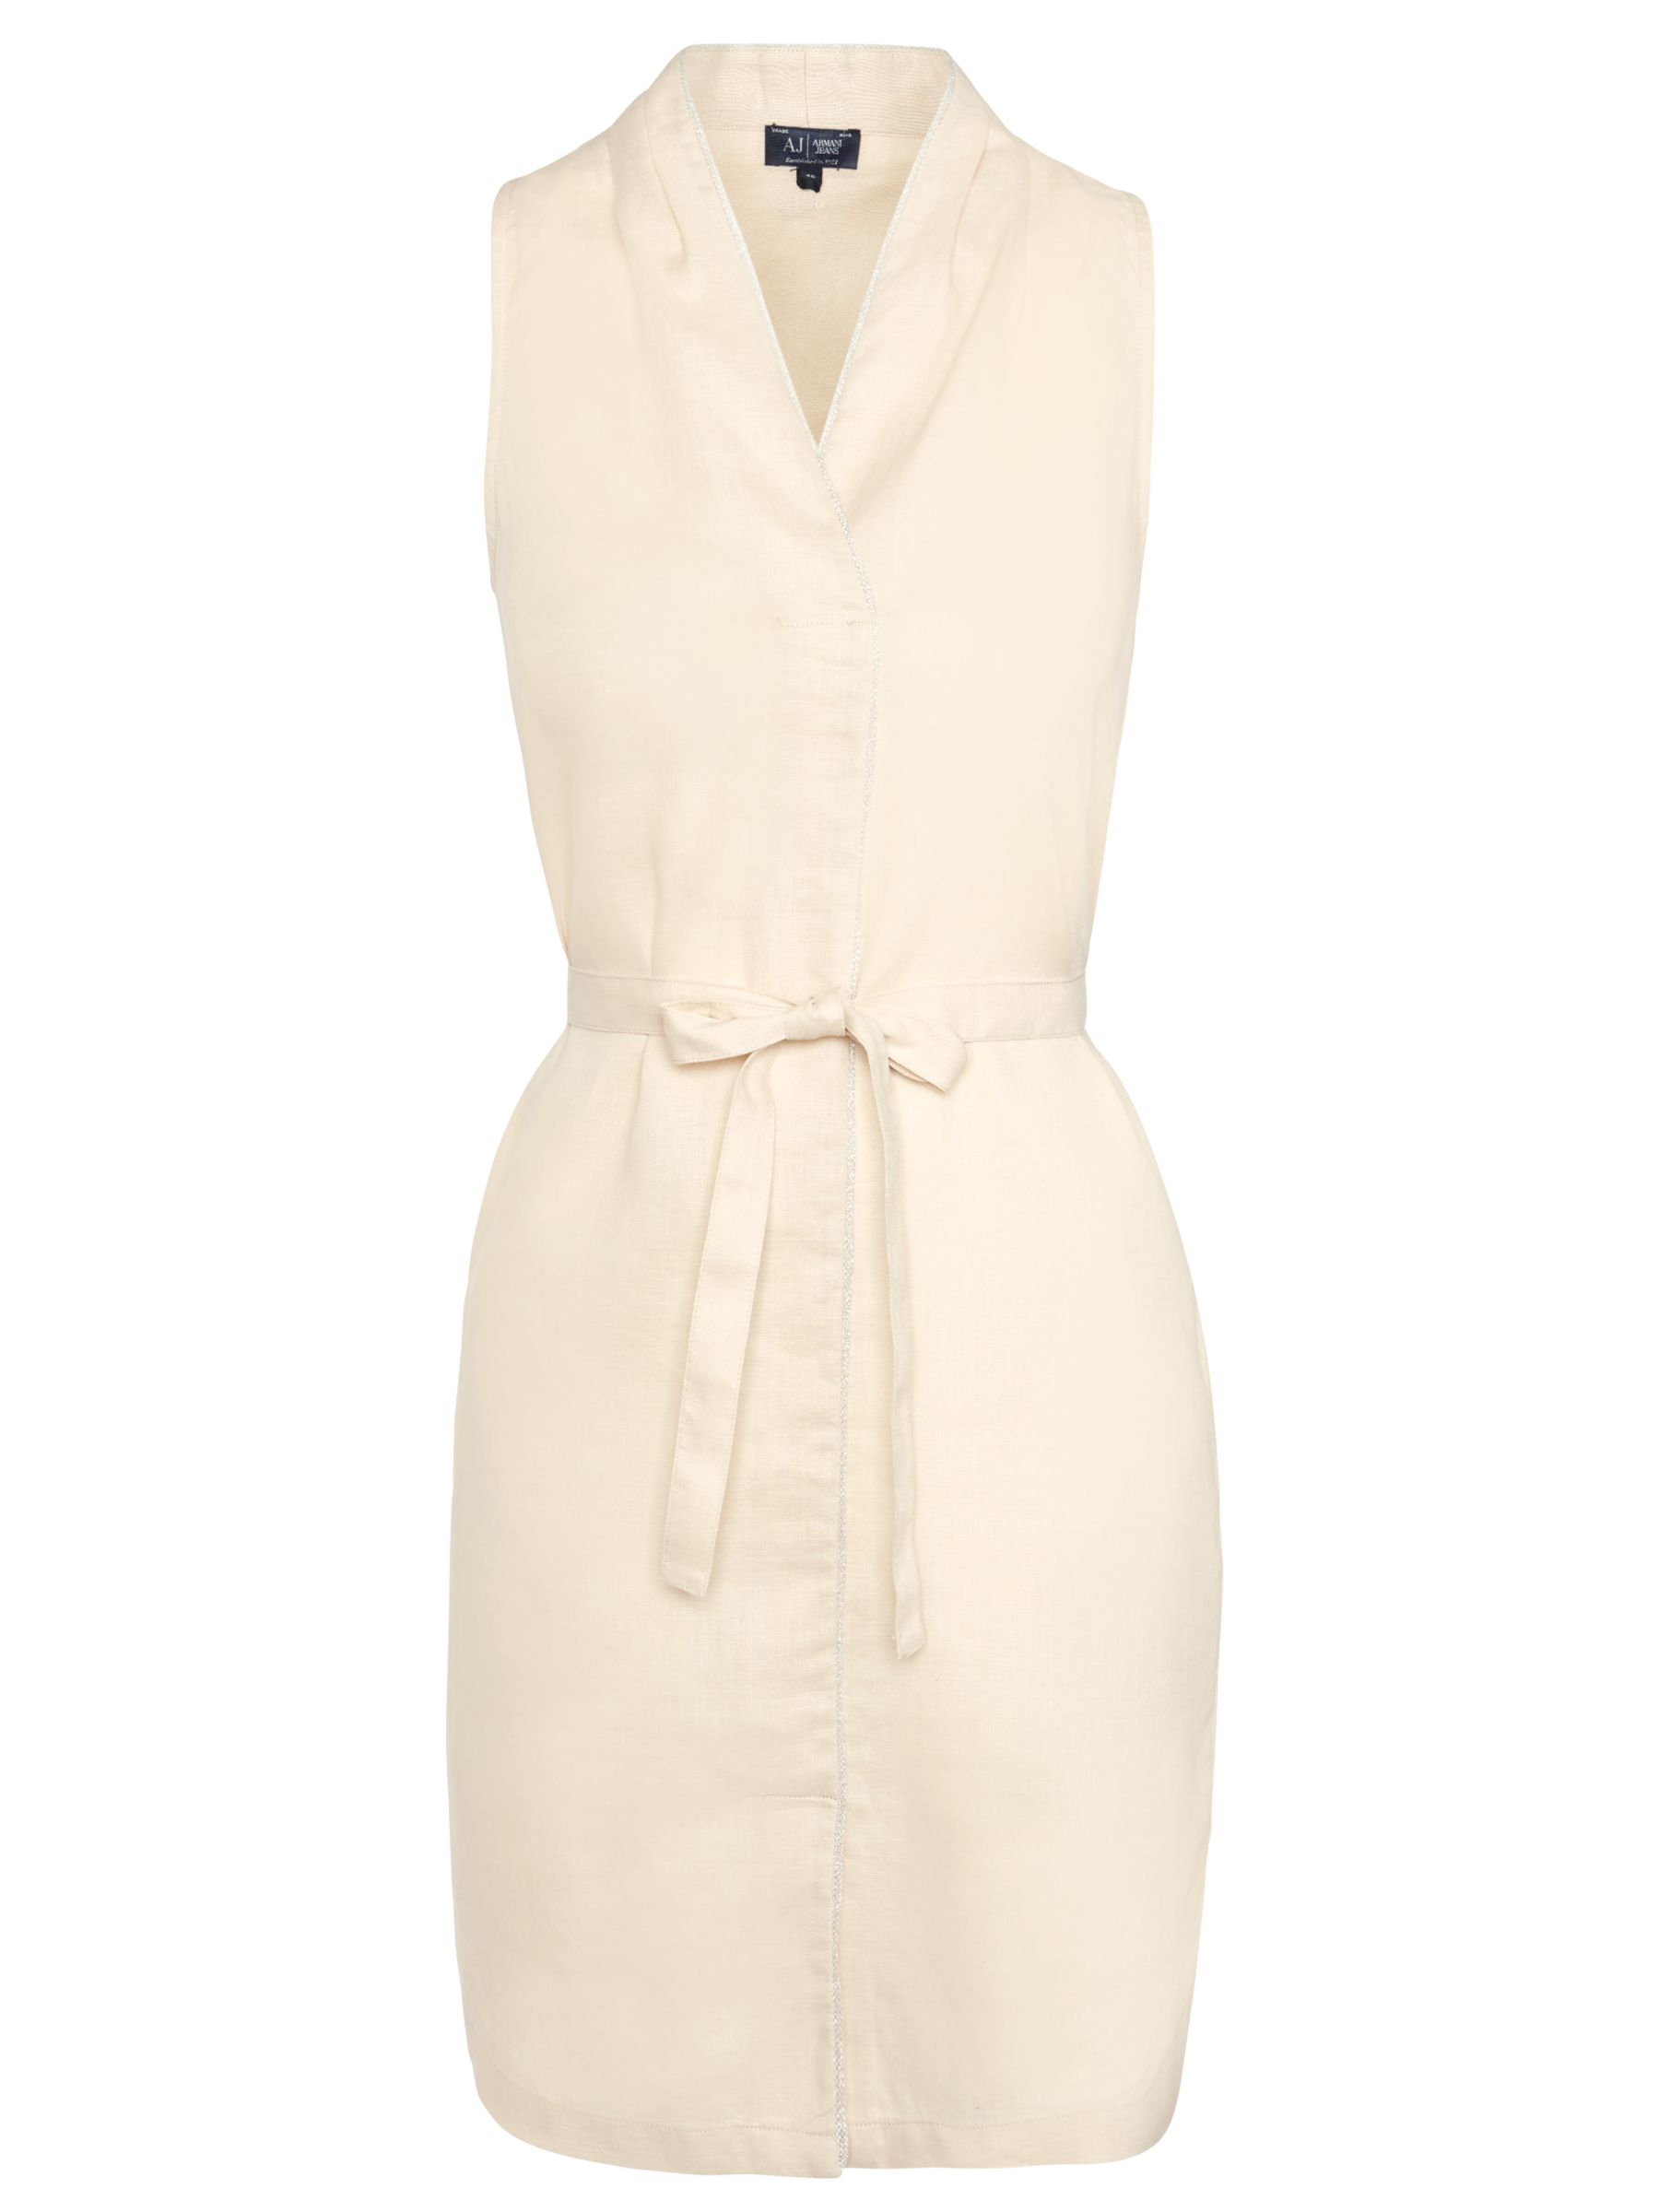 armani jeans linen belted dress, armani, jeans, linen, belted, dress, armani jeans, beige beige lime lime lime lime beige beige lime beige, 16 10 14 16 12 10 12 14 8 8, edition magazine, ss15 trend pastels, women, womens dresses, fashion magazine, utility report - shop the collection, womens holiday shop, 1871626